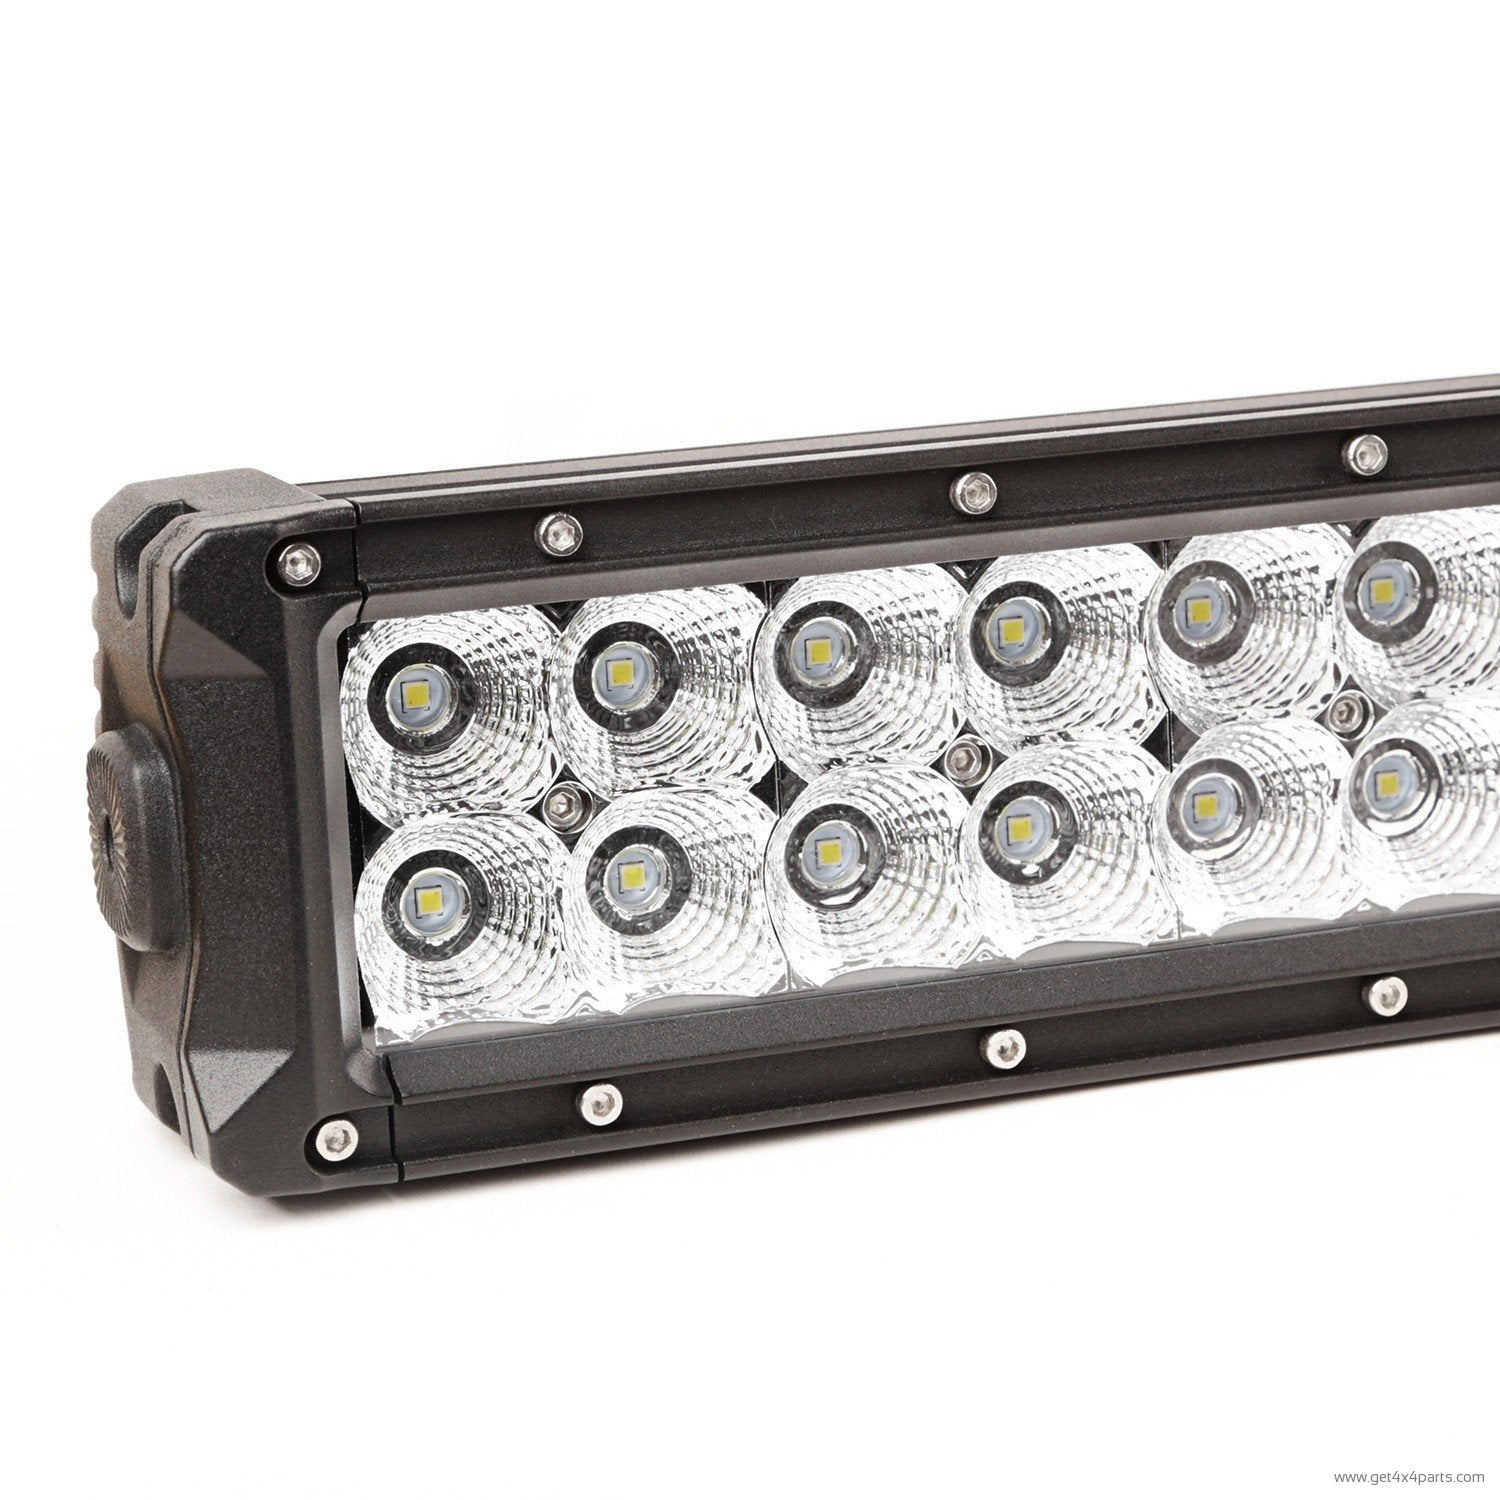 Buy rugged ridge led light bar 50 inch 144 watt at get4x4parts rugged ridge led light bar 50 inch 144 watt aloadofball Gallery